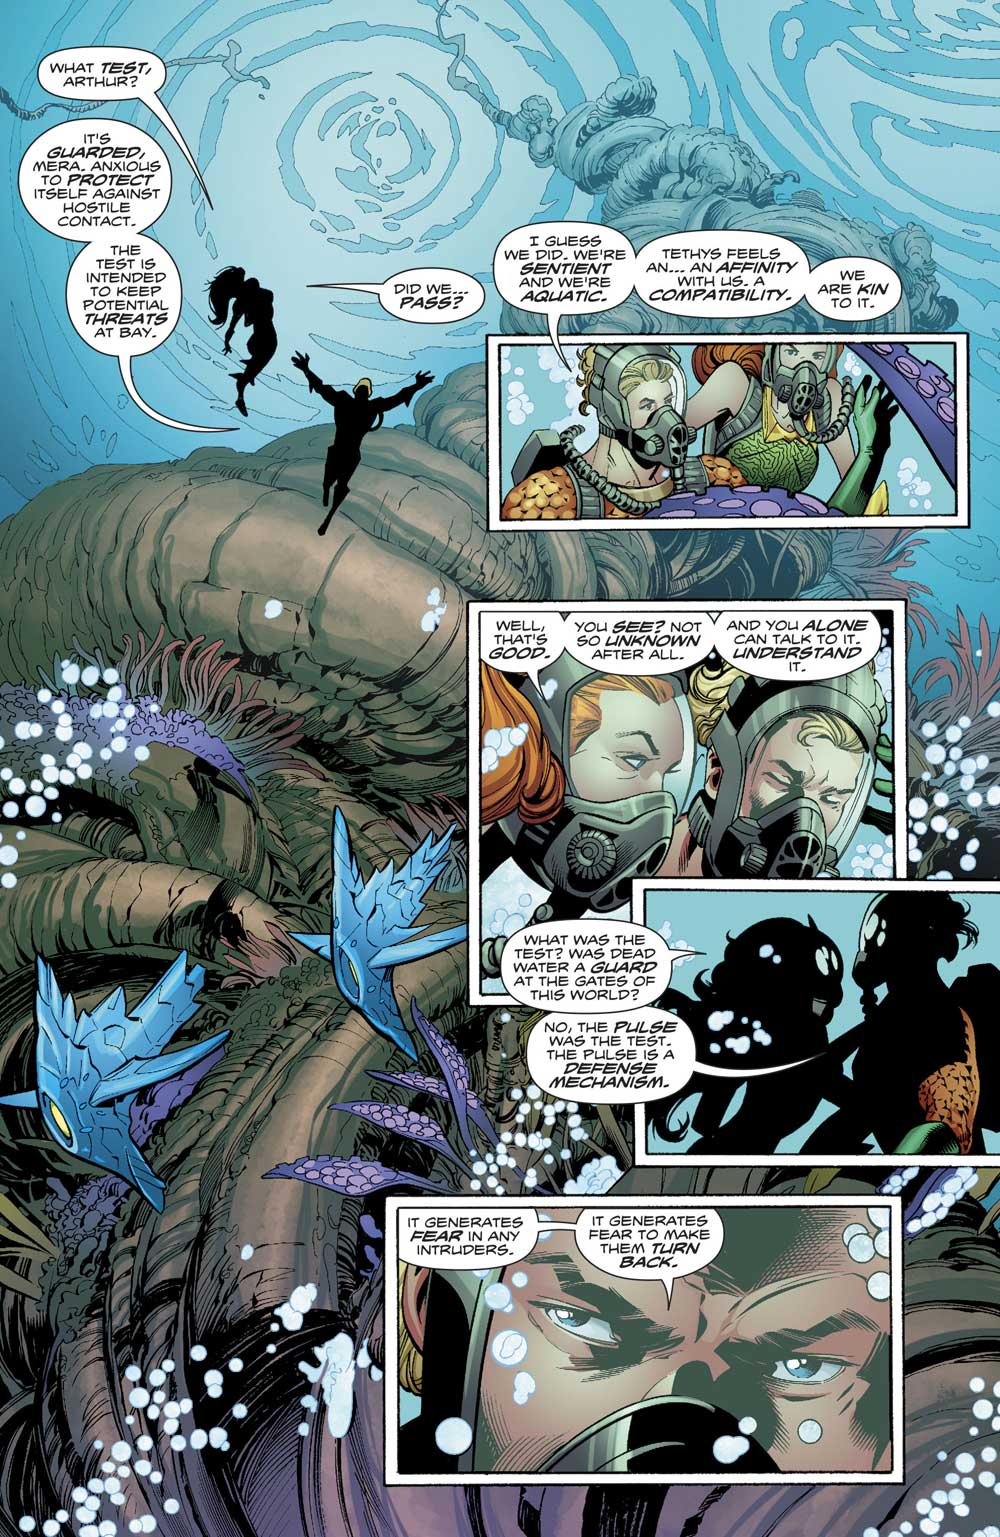 Aquaman #21 by Dan Abnett, Scot Eaton and Wayne Faucher